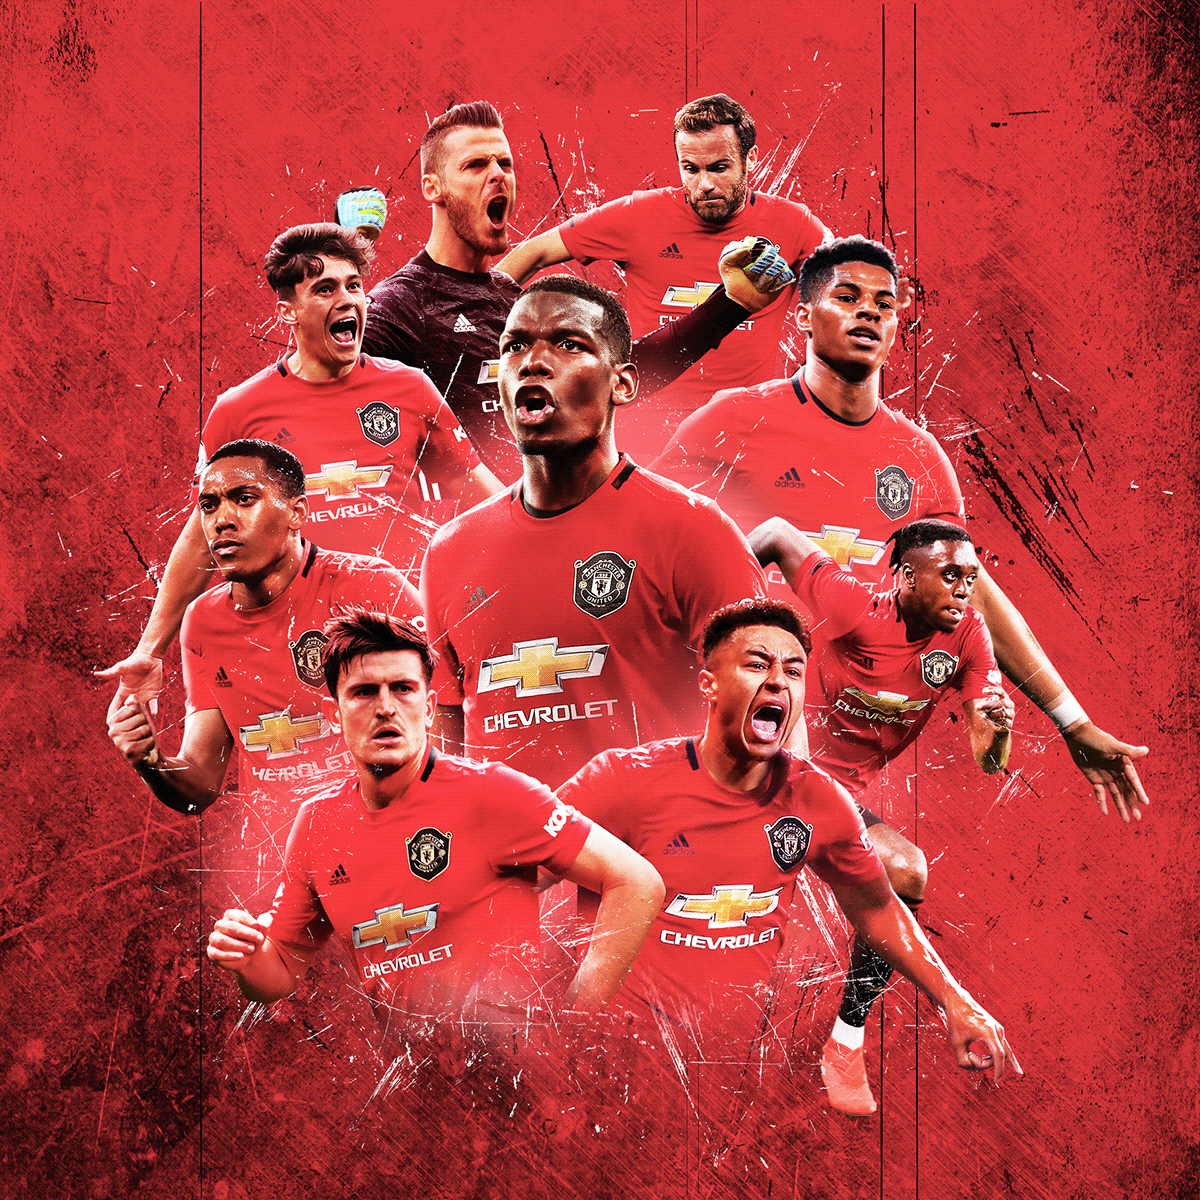 Football Collage On Behance In 2020 Manchester United Team Manchester United Wallpaper Manchester United Players